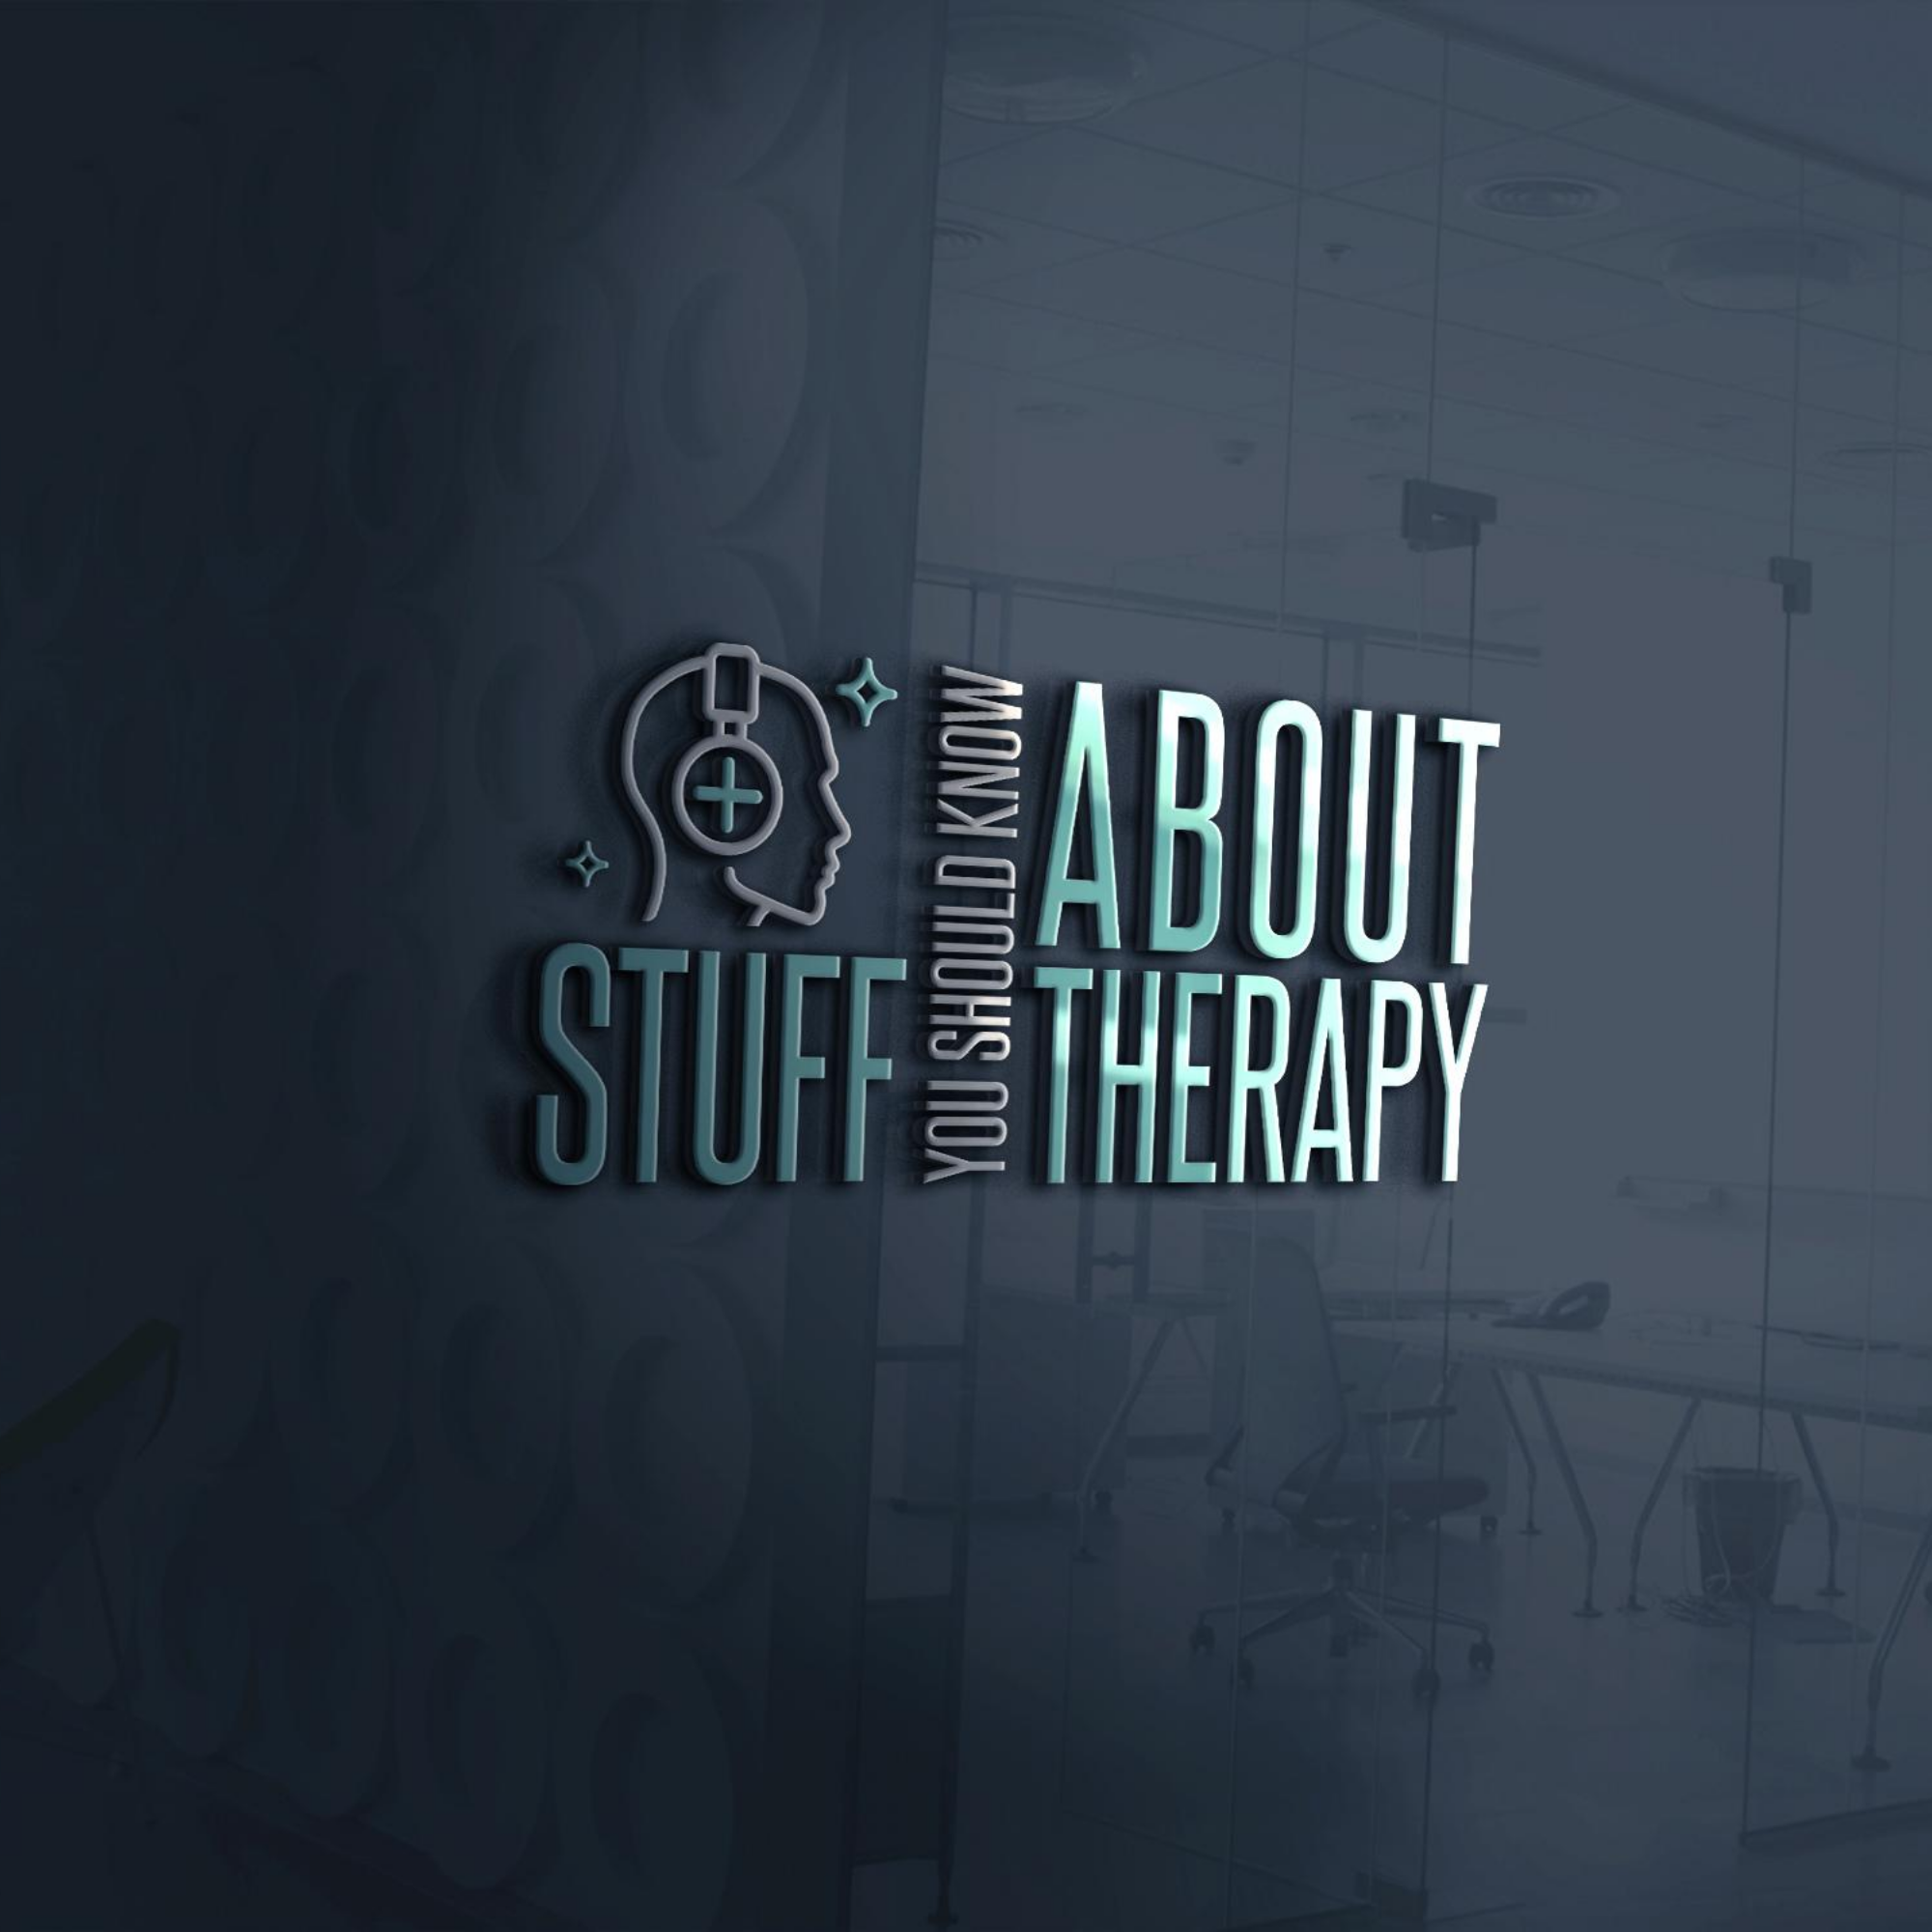 Show artwork for Stuff You Should Know About Therapy